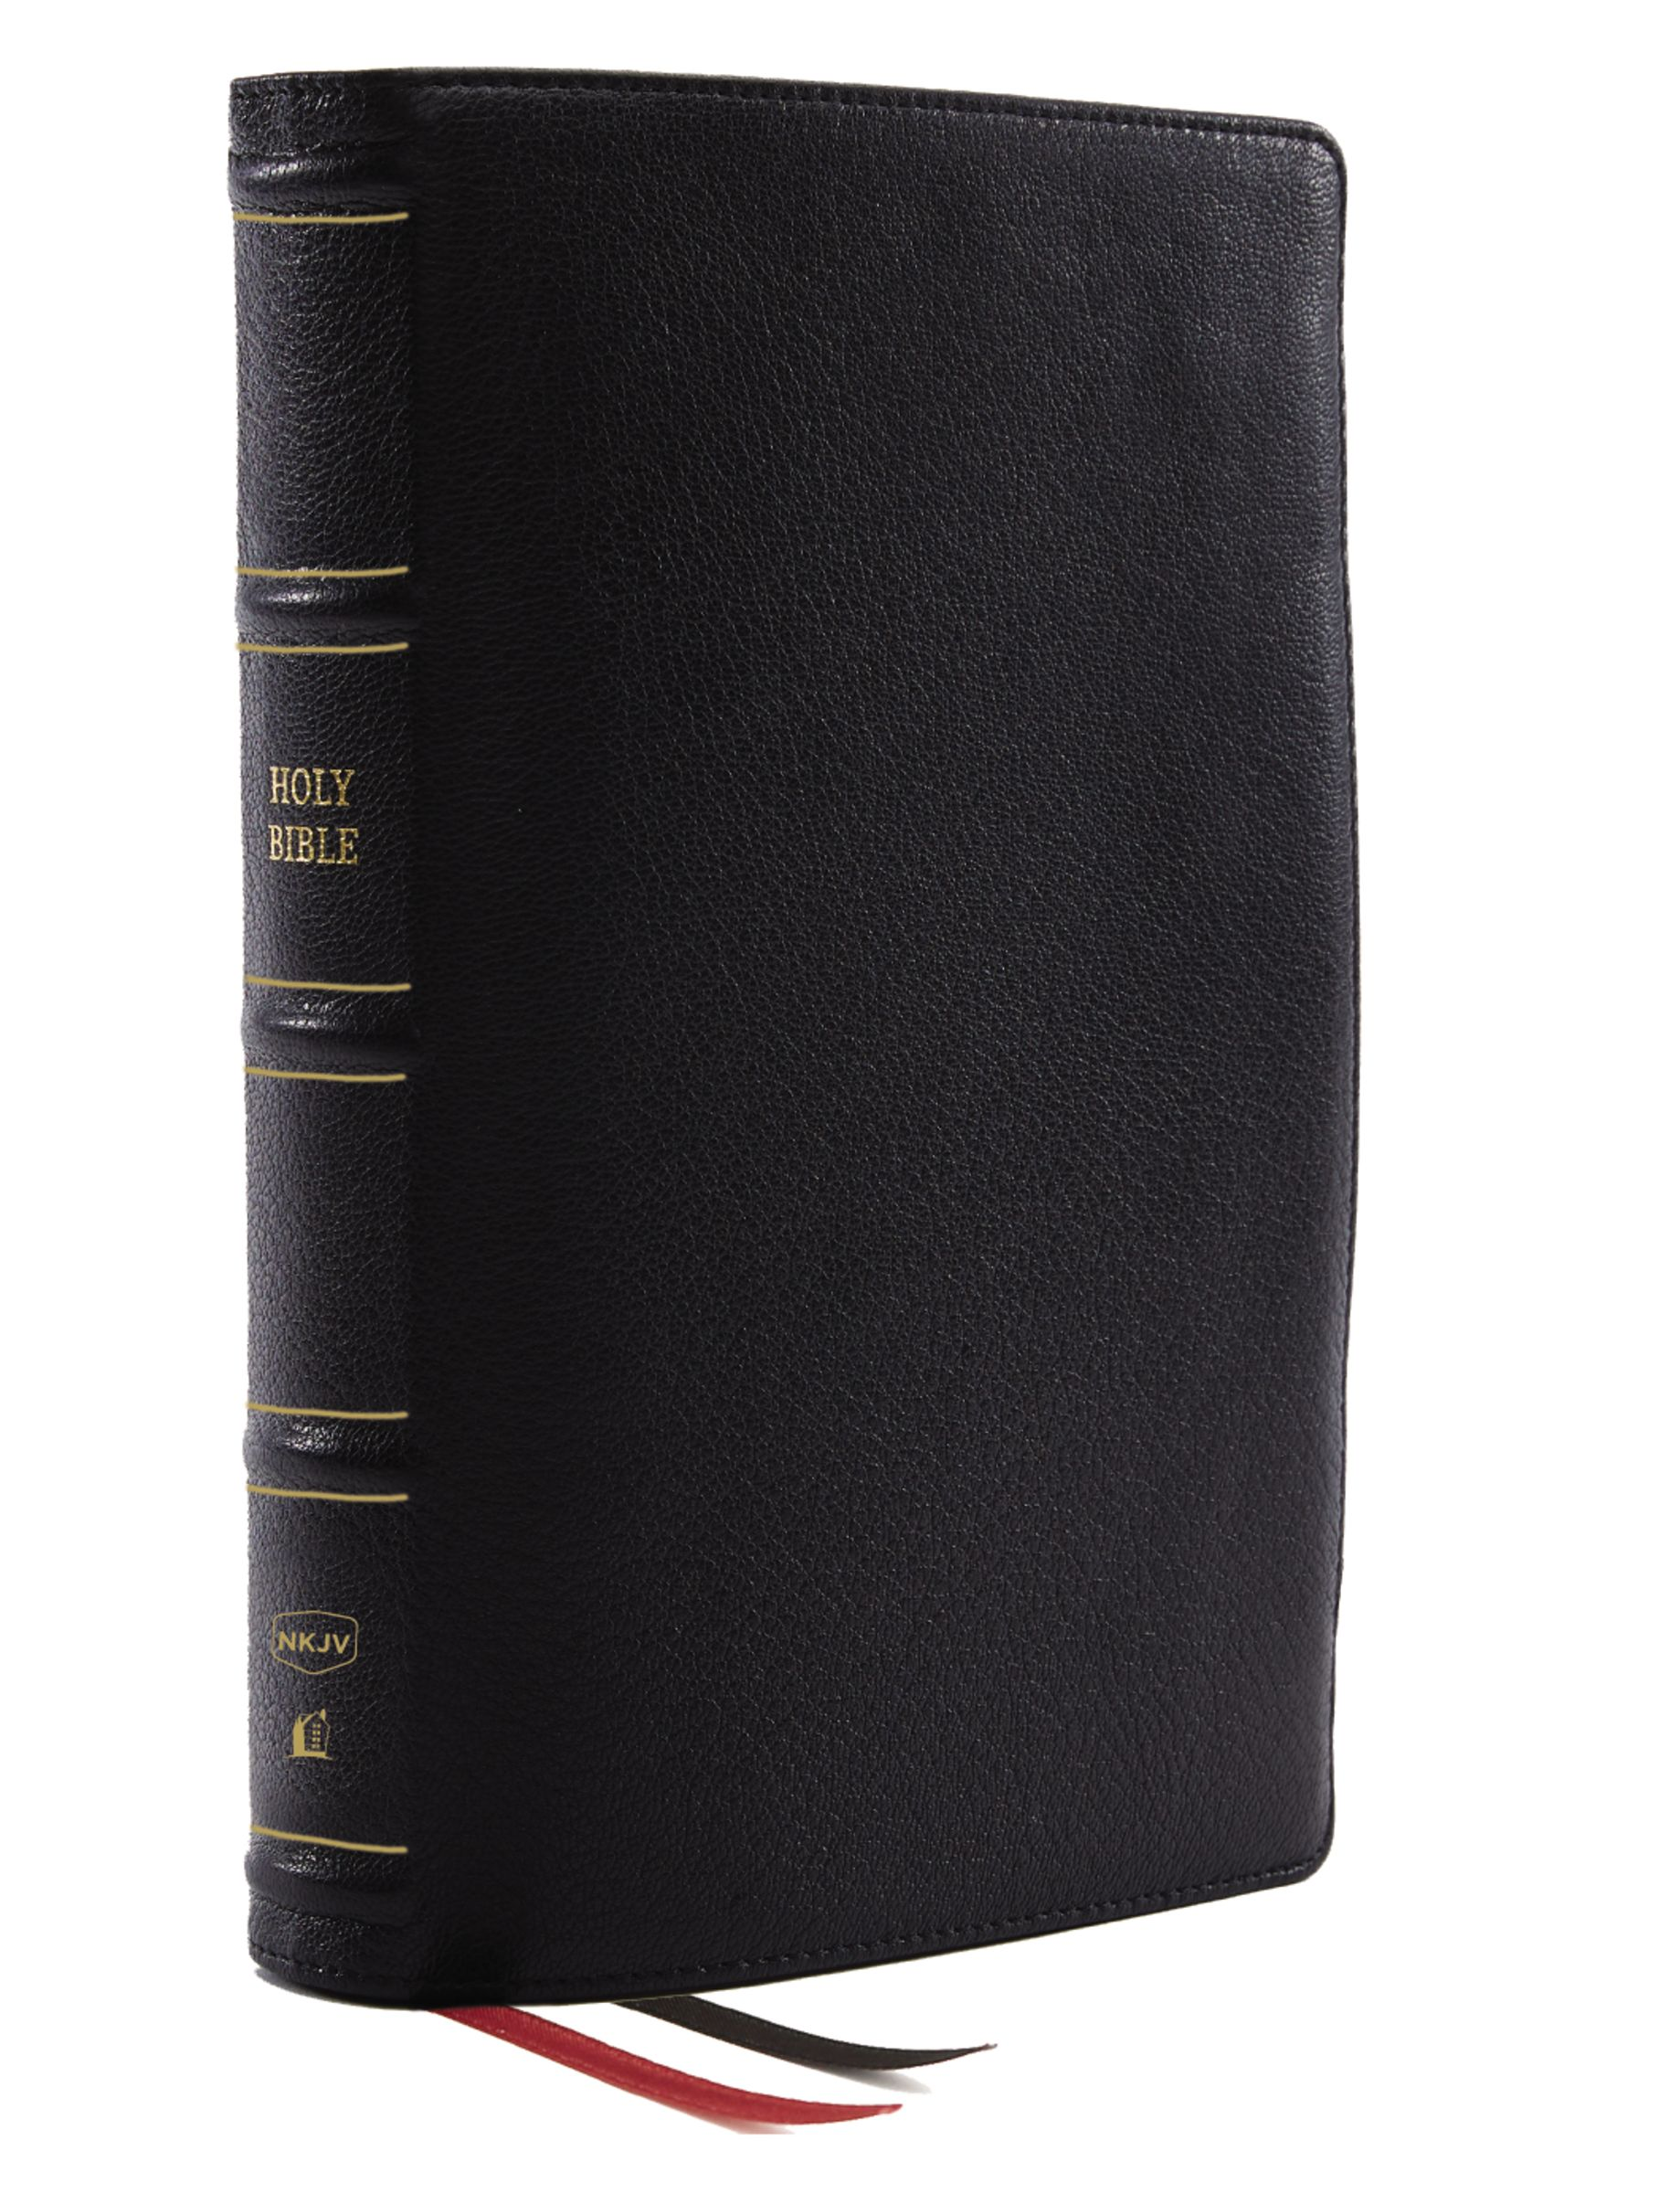 NKJV, Thinline Reference Bible, Genuine Leather, Black, Red Letter, Thumb Indexed, Comfort Print: Holy Bible, New King James Version